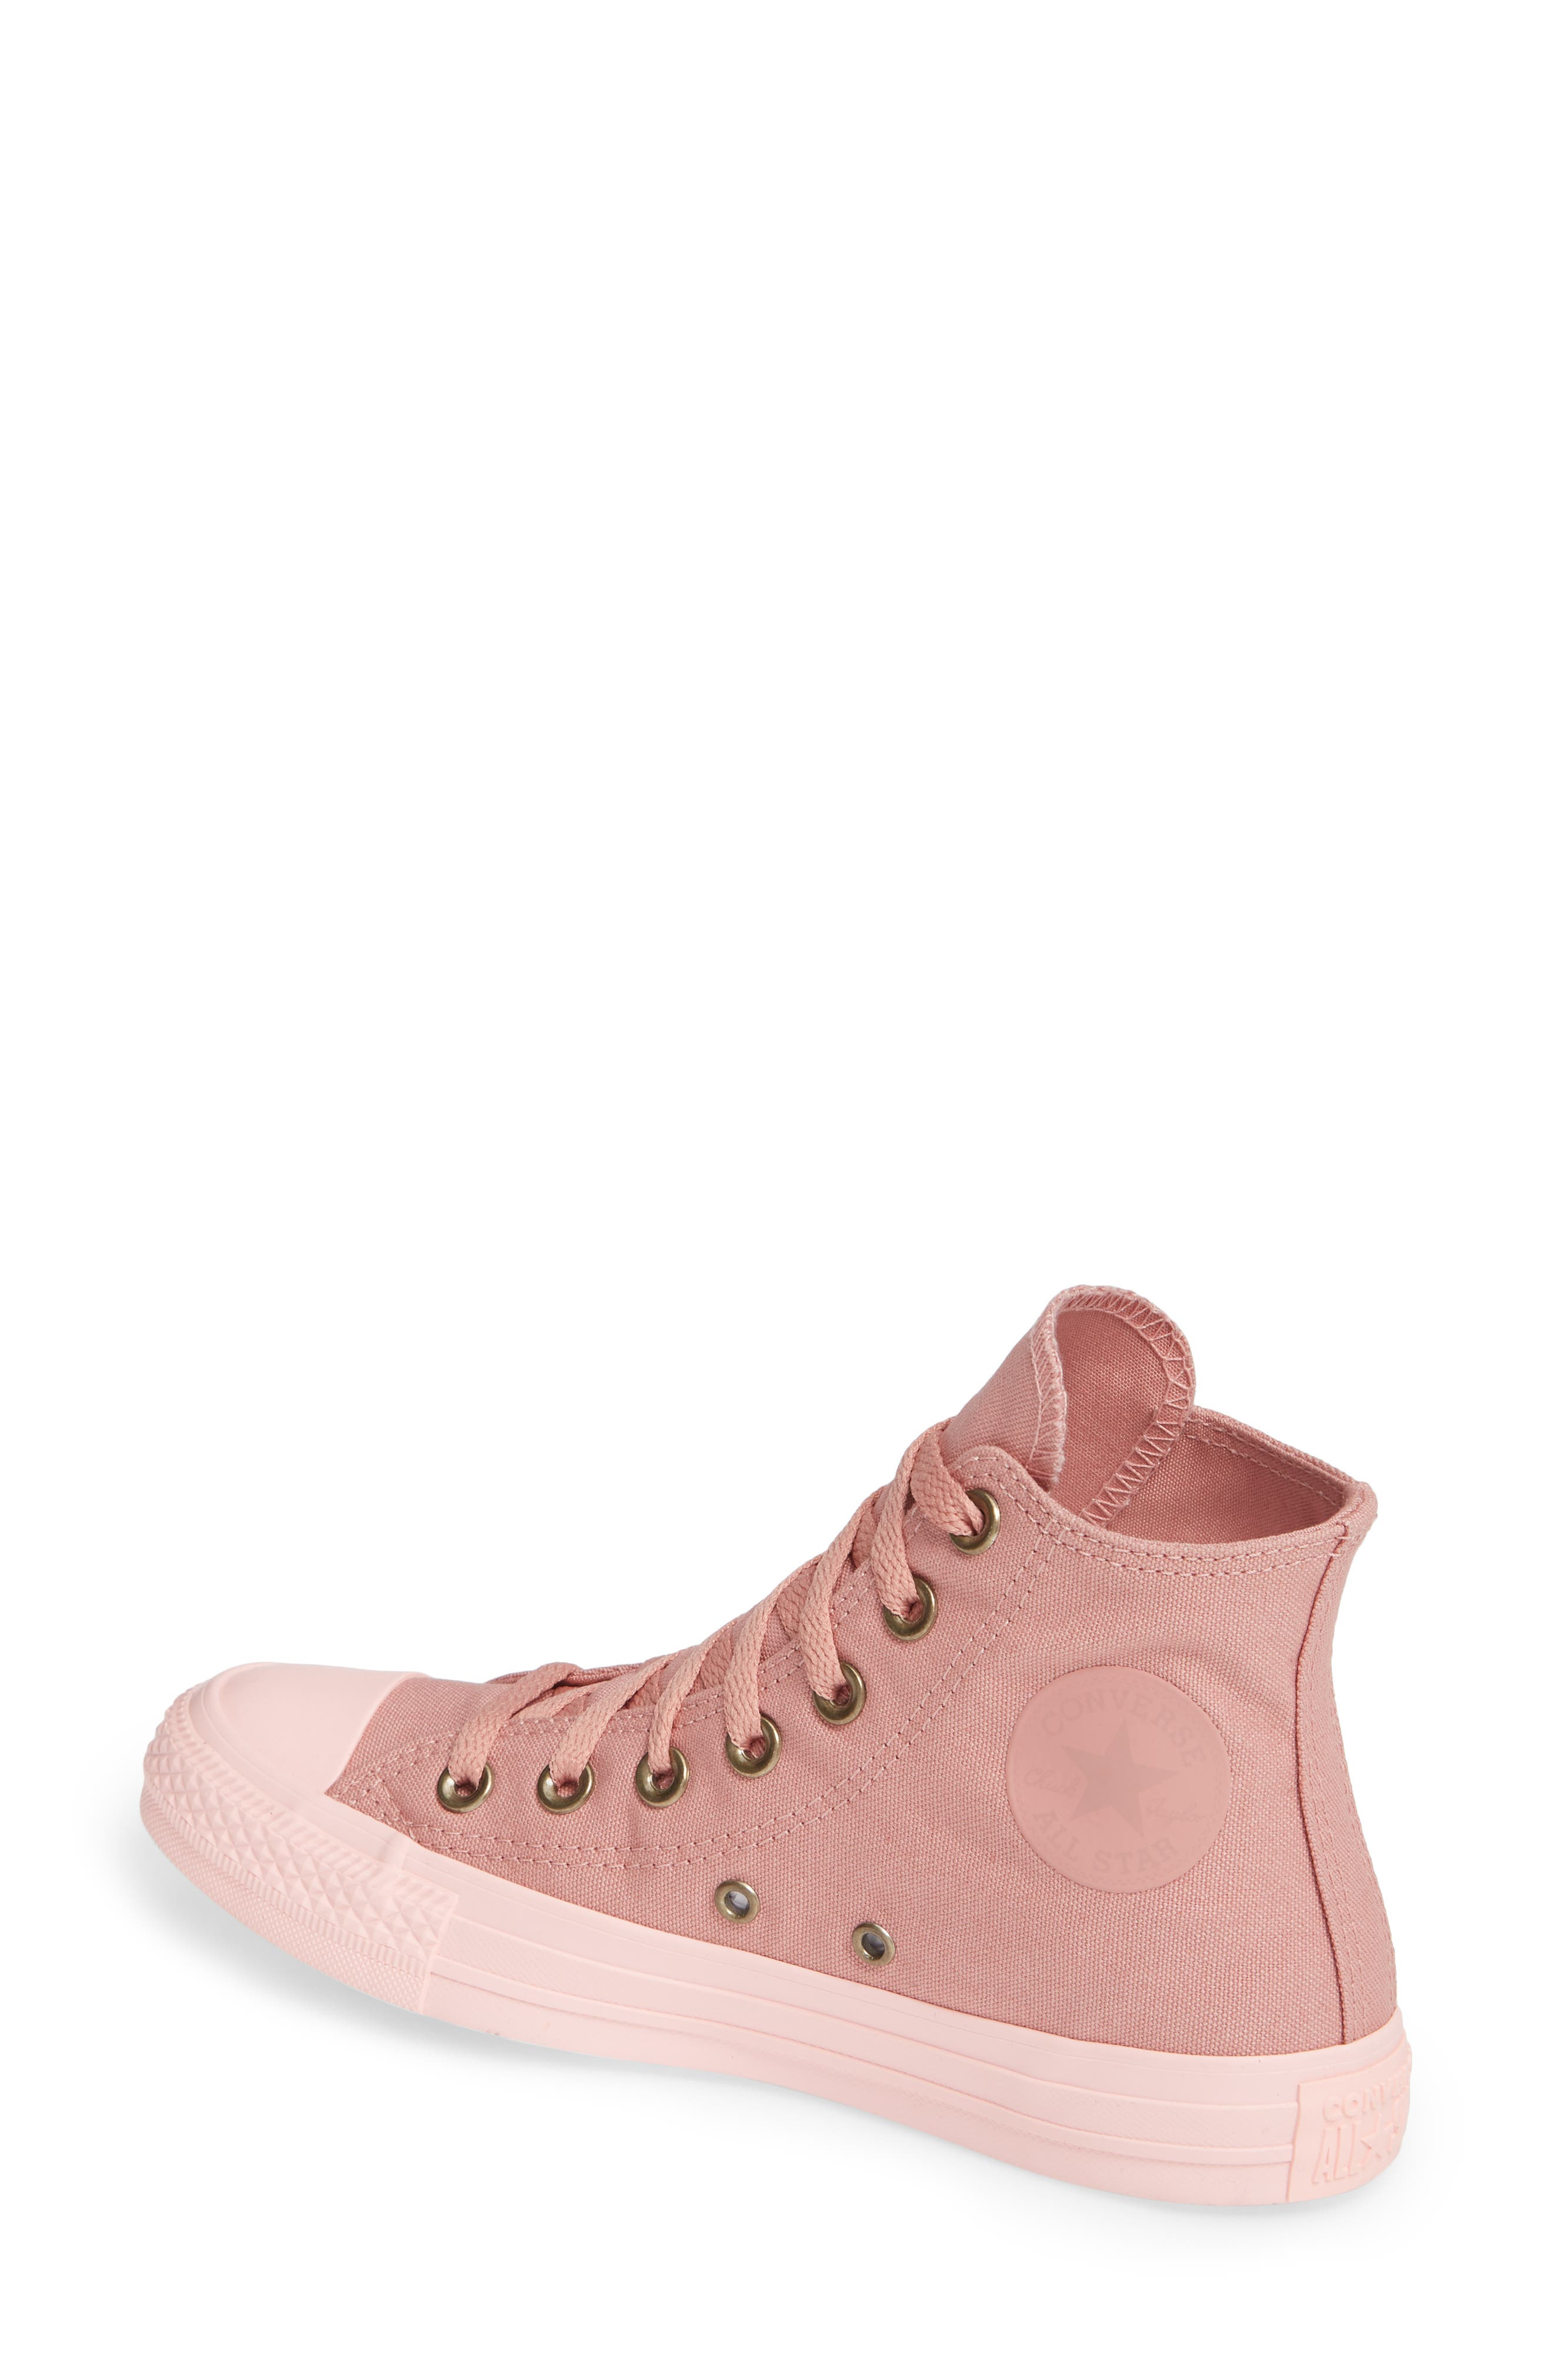 Chuck Taylor<sup>®</sup> All Star<sup>®</sup> Botanical High Top Sneaker,                             Alternate thumbnail 2, color,                             RUST PINK